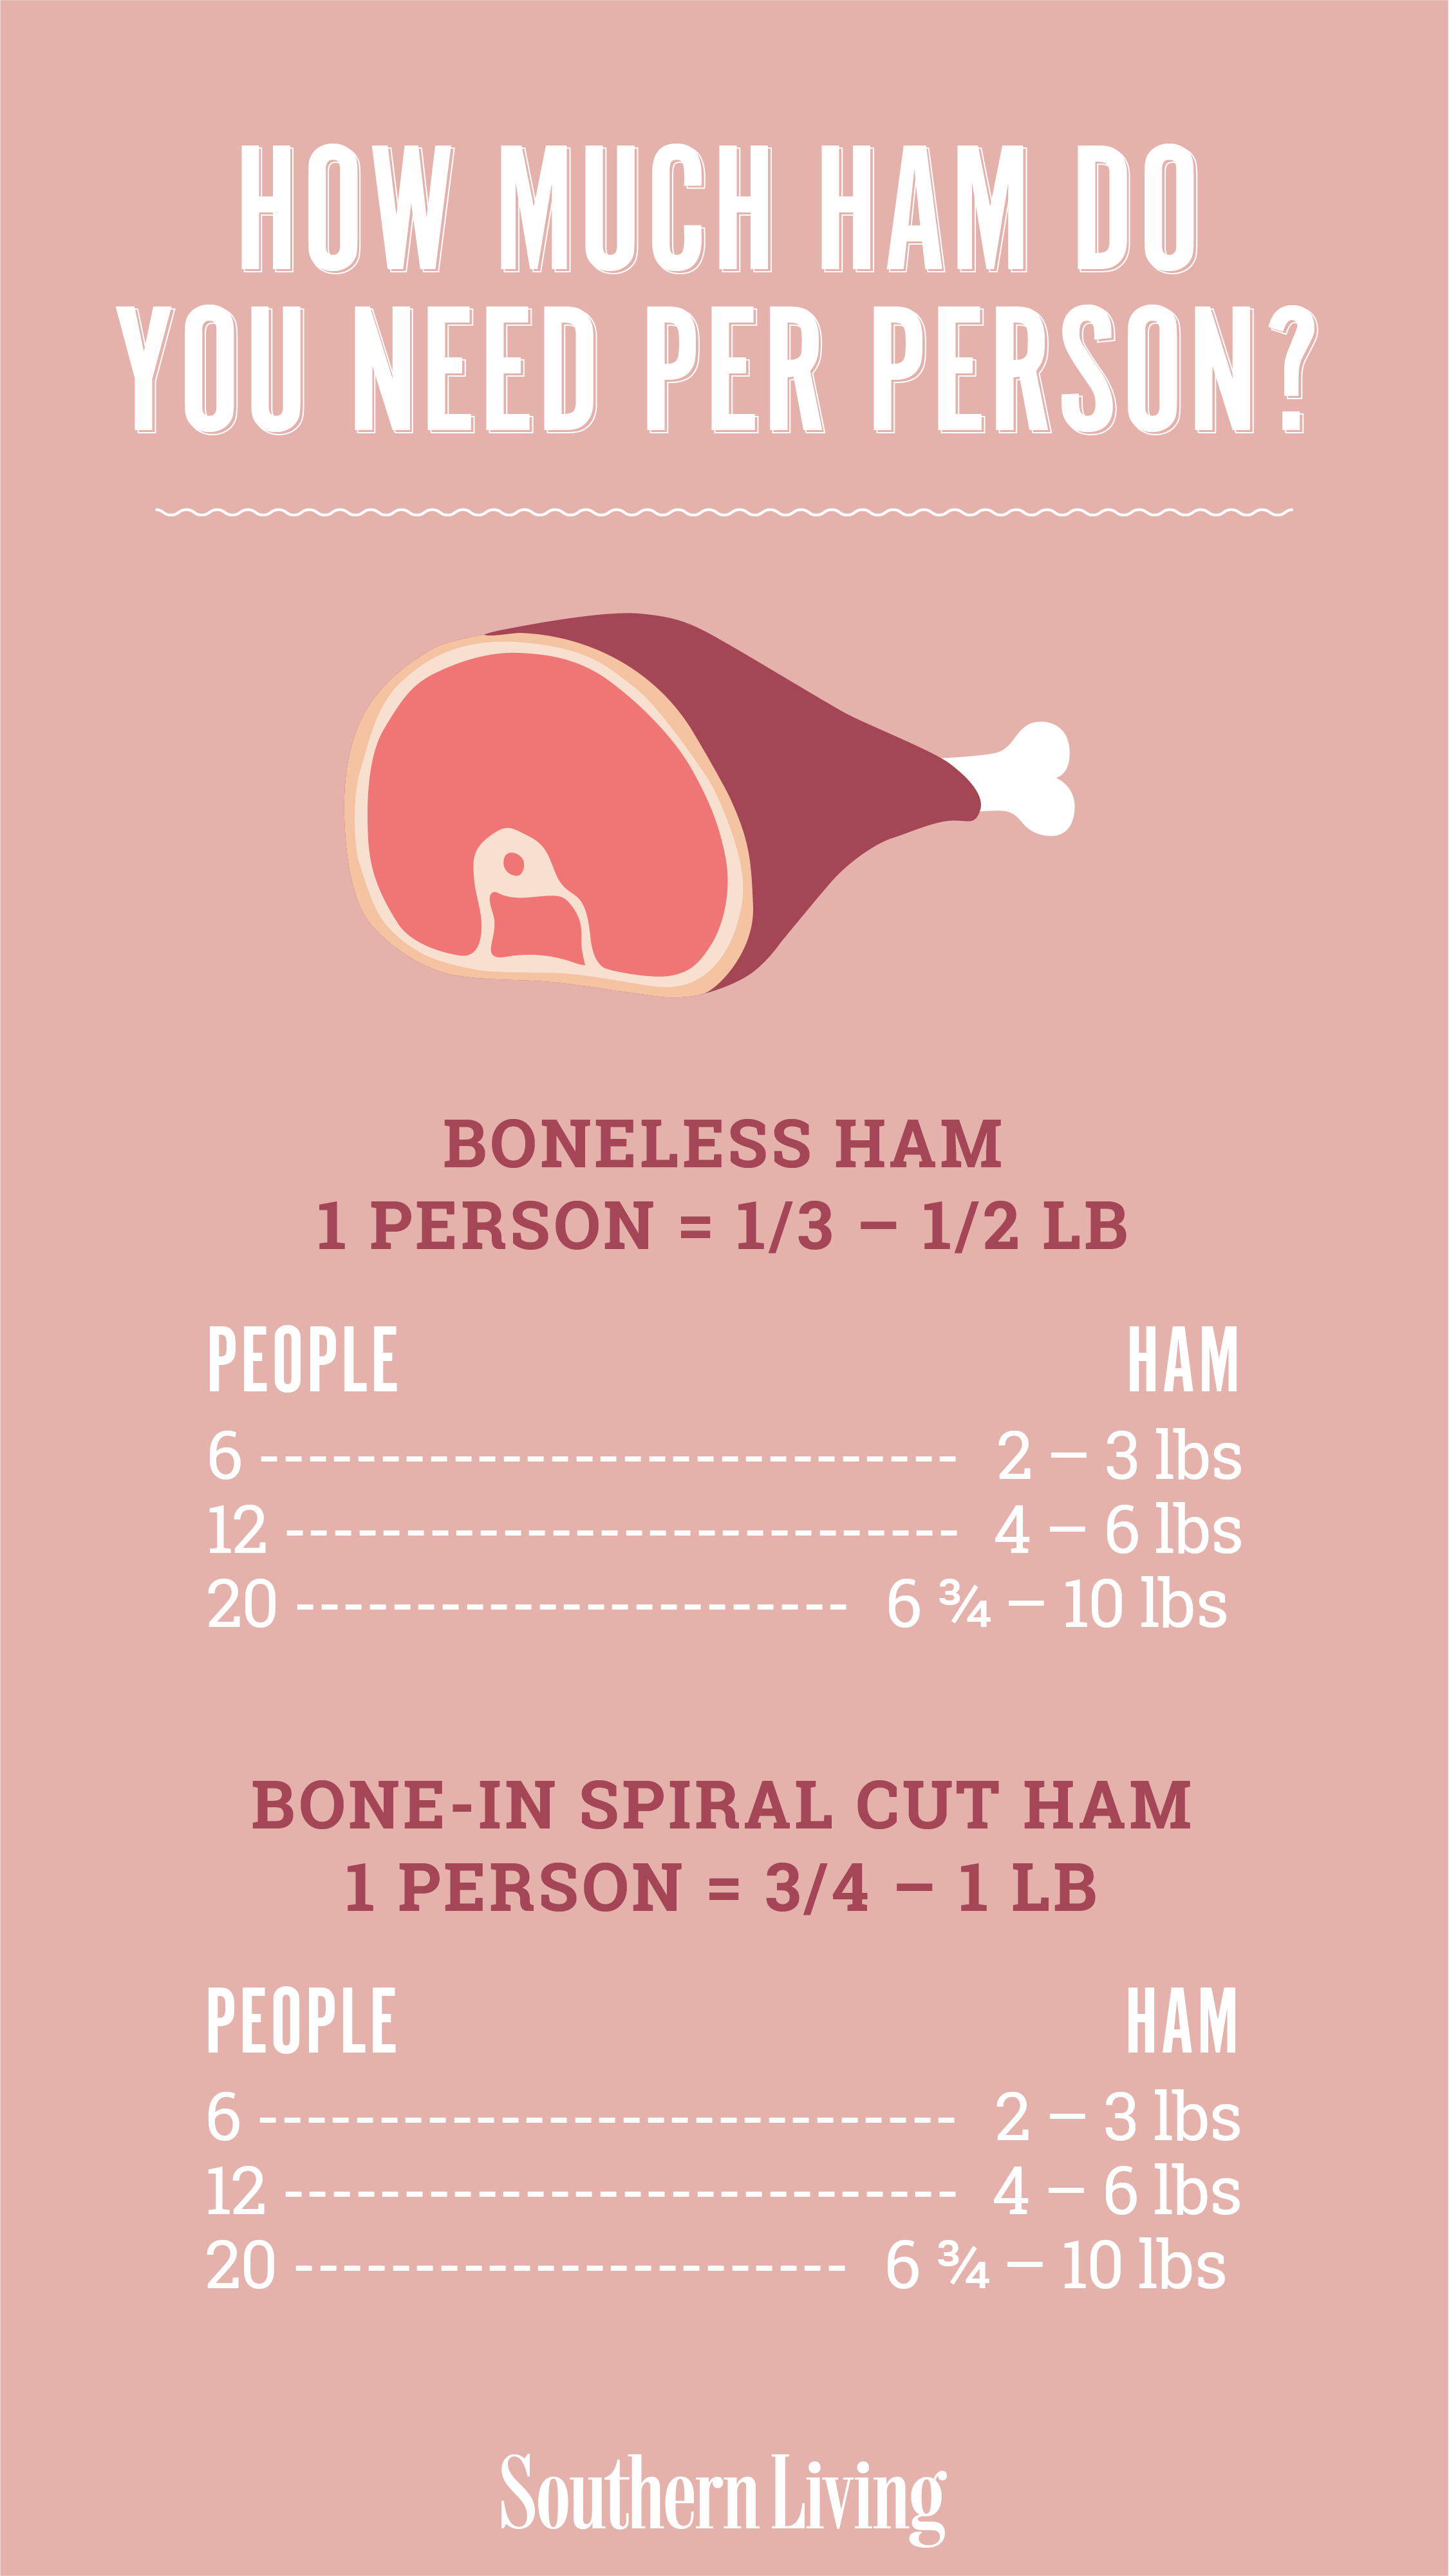 How Much Ham Do You Need Per Person